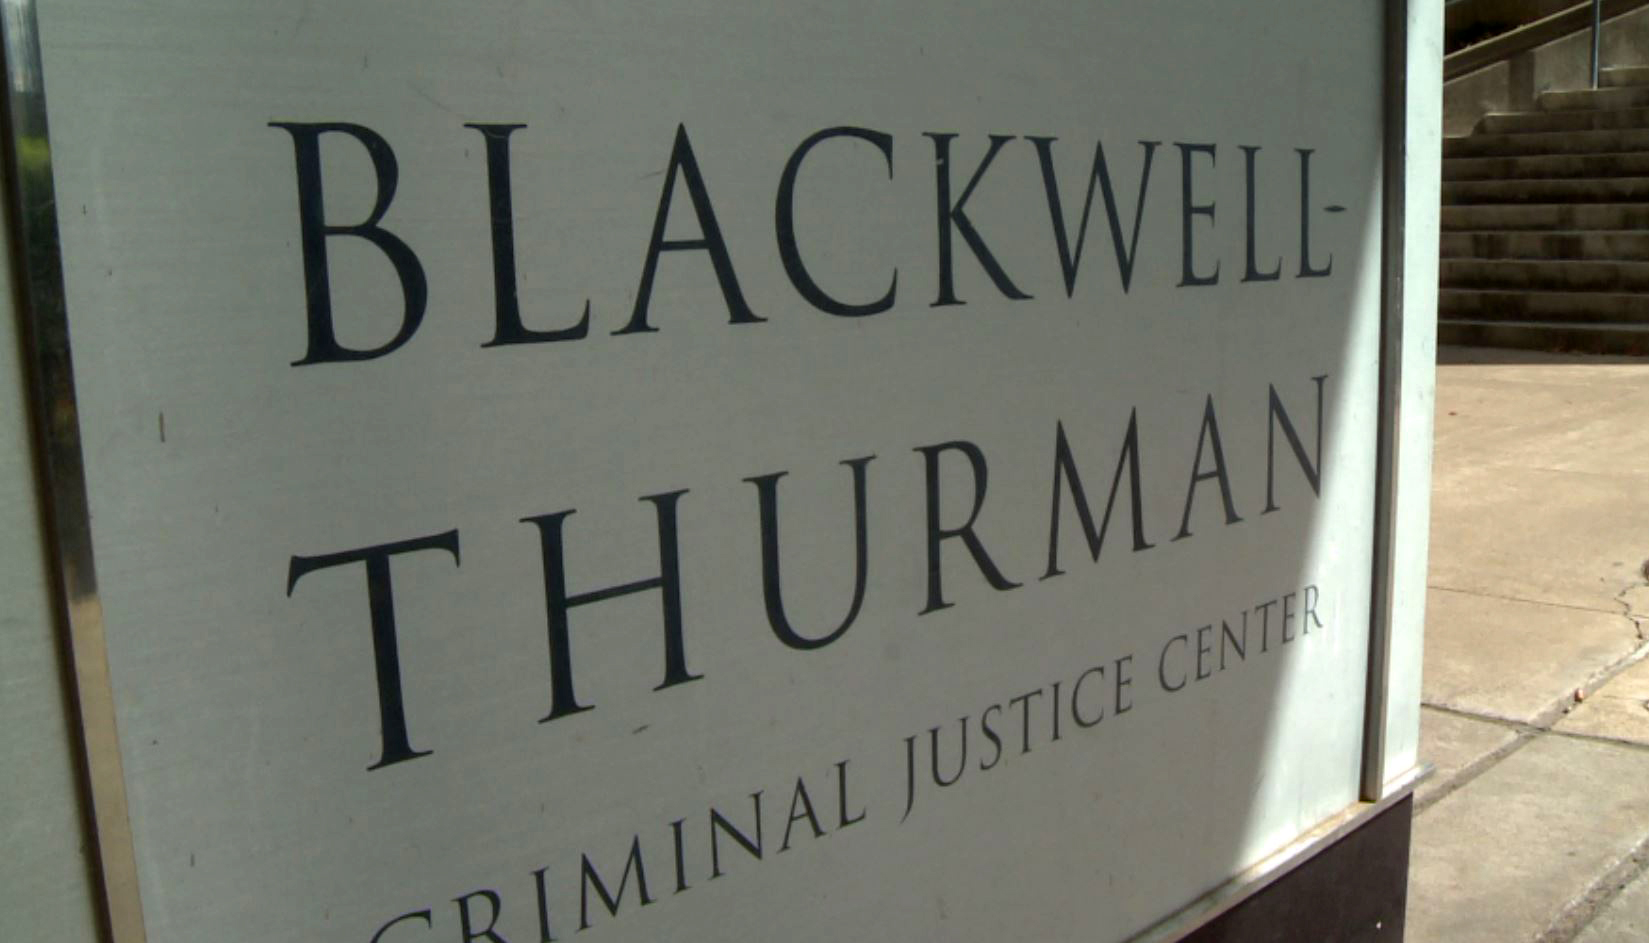 Blackwell Thurman Criminal Justice Center - Courthouse_363123